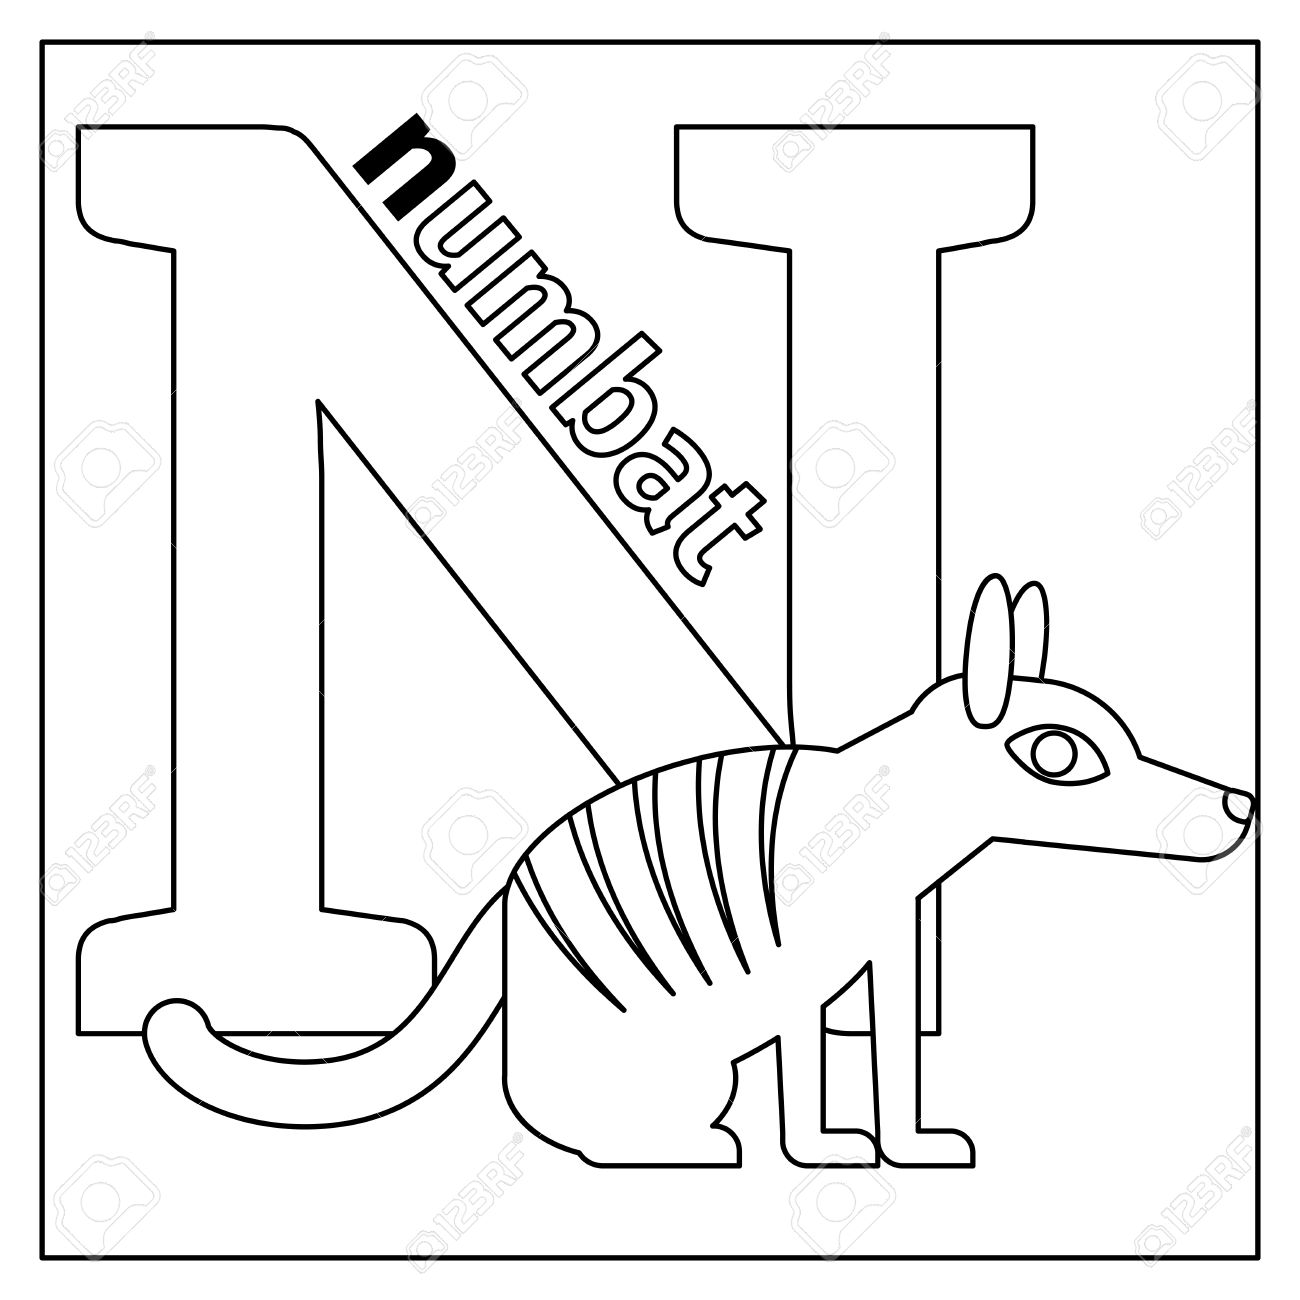 Zoo Drawing For Kids at GetDrawings.com | Free for personal use Zoo ...